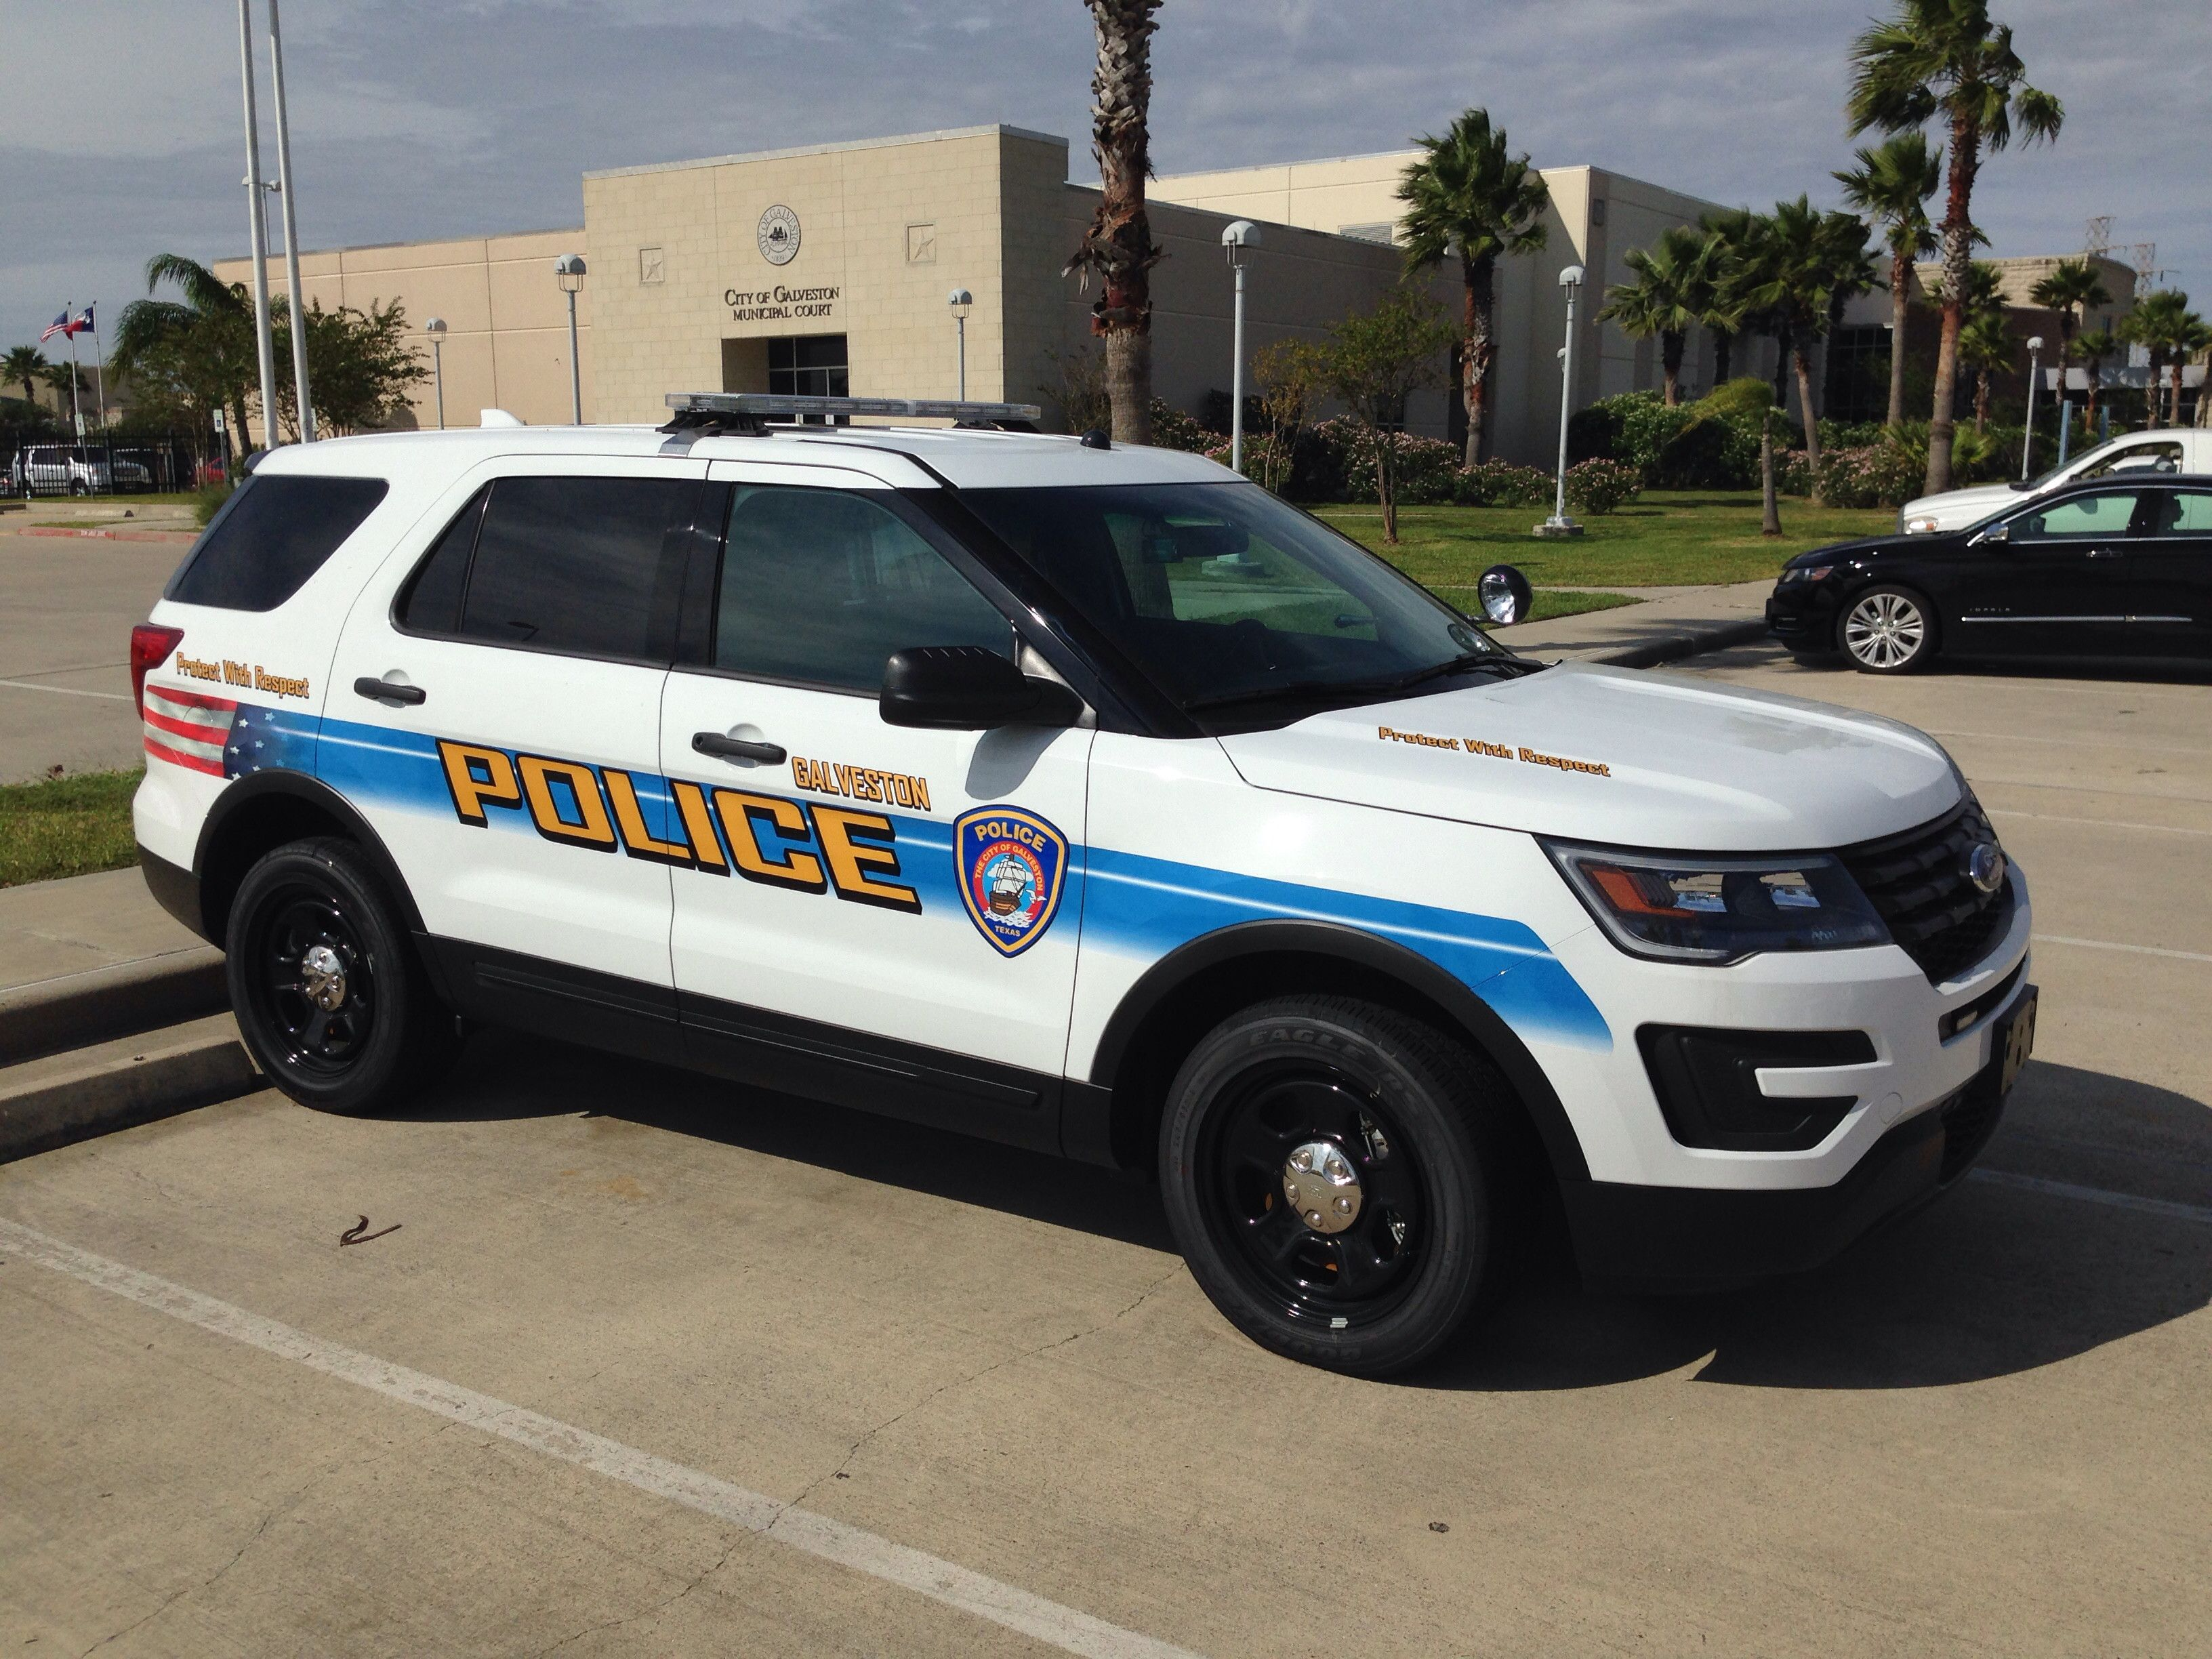 Galveston Police Department Ford Police Interceptor SUV & Galveston Police Department Ford Police Interceptor SUV | Police ... markmcfarlin.com